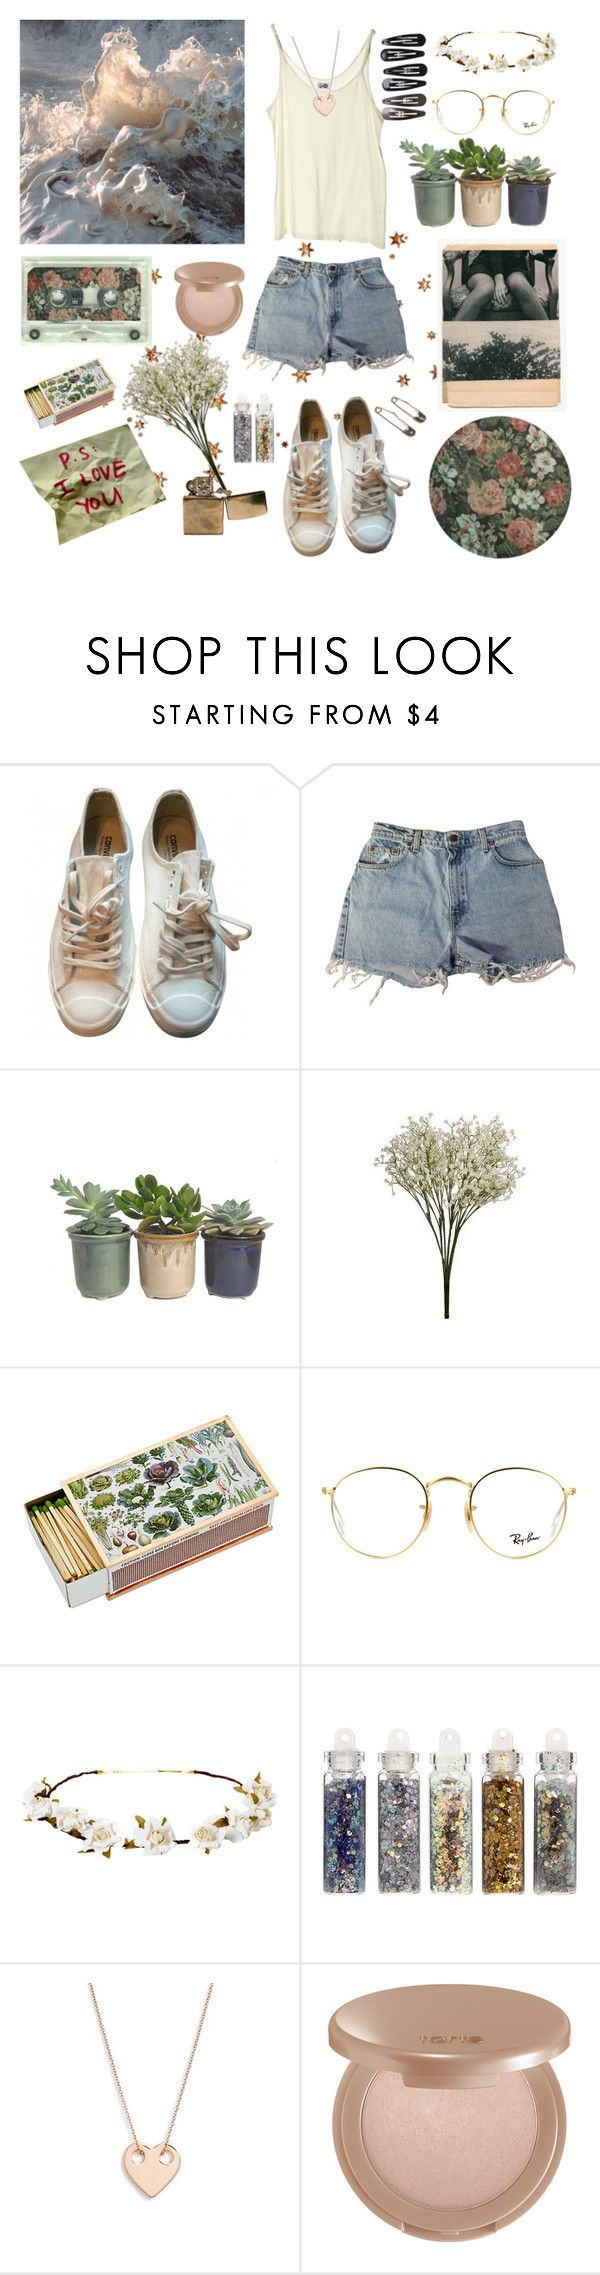 """""""summer melancholy 🌾"""" by lilyjey ❤ liked on Polyvore featuring Chloé, Maison Margiela, Cheap Monday, Levi's, Hostess, Ray-Ban, Cult Gaia, ASOS, Ginette NY and tarte"""